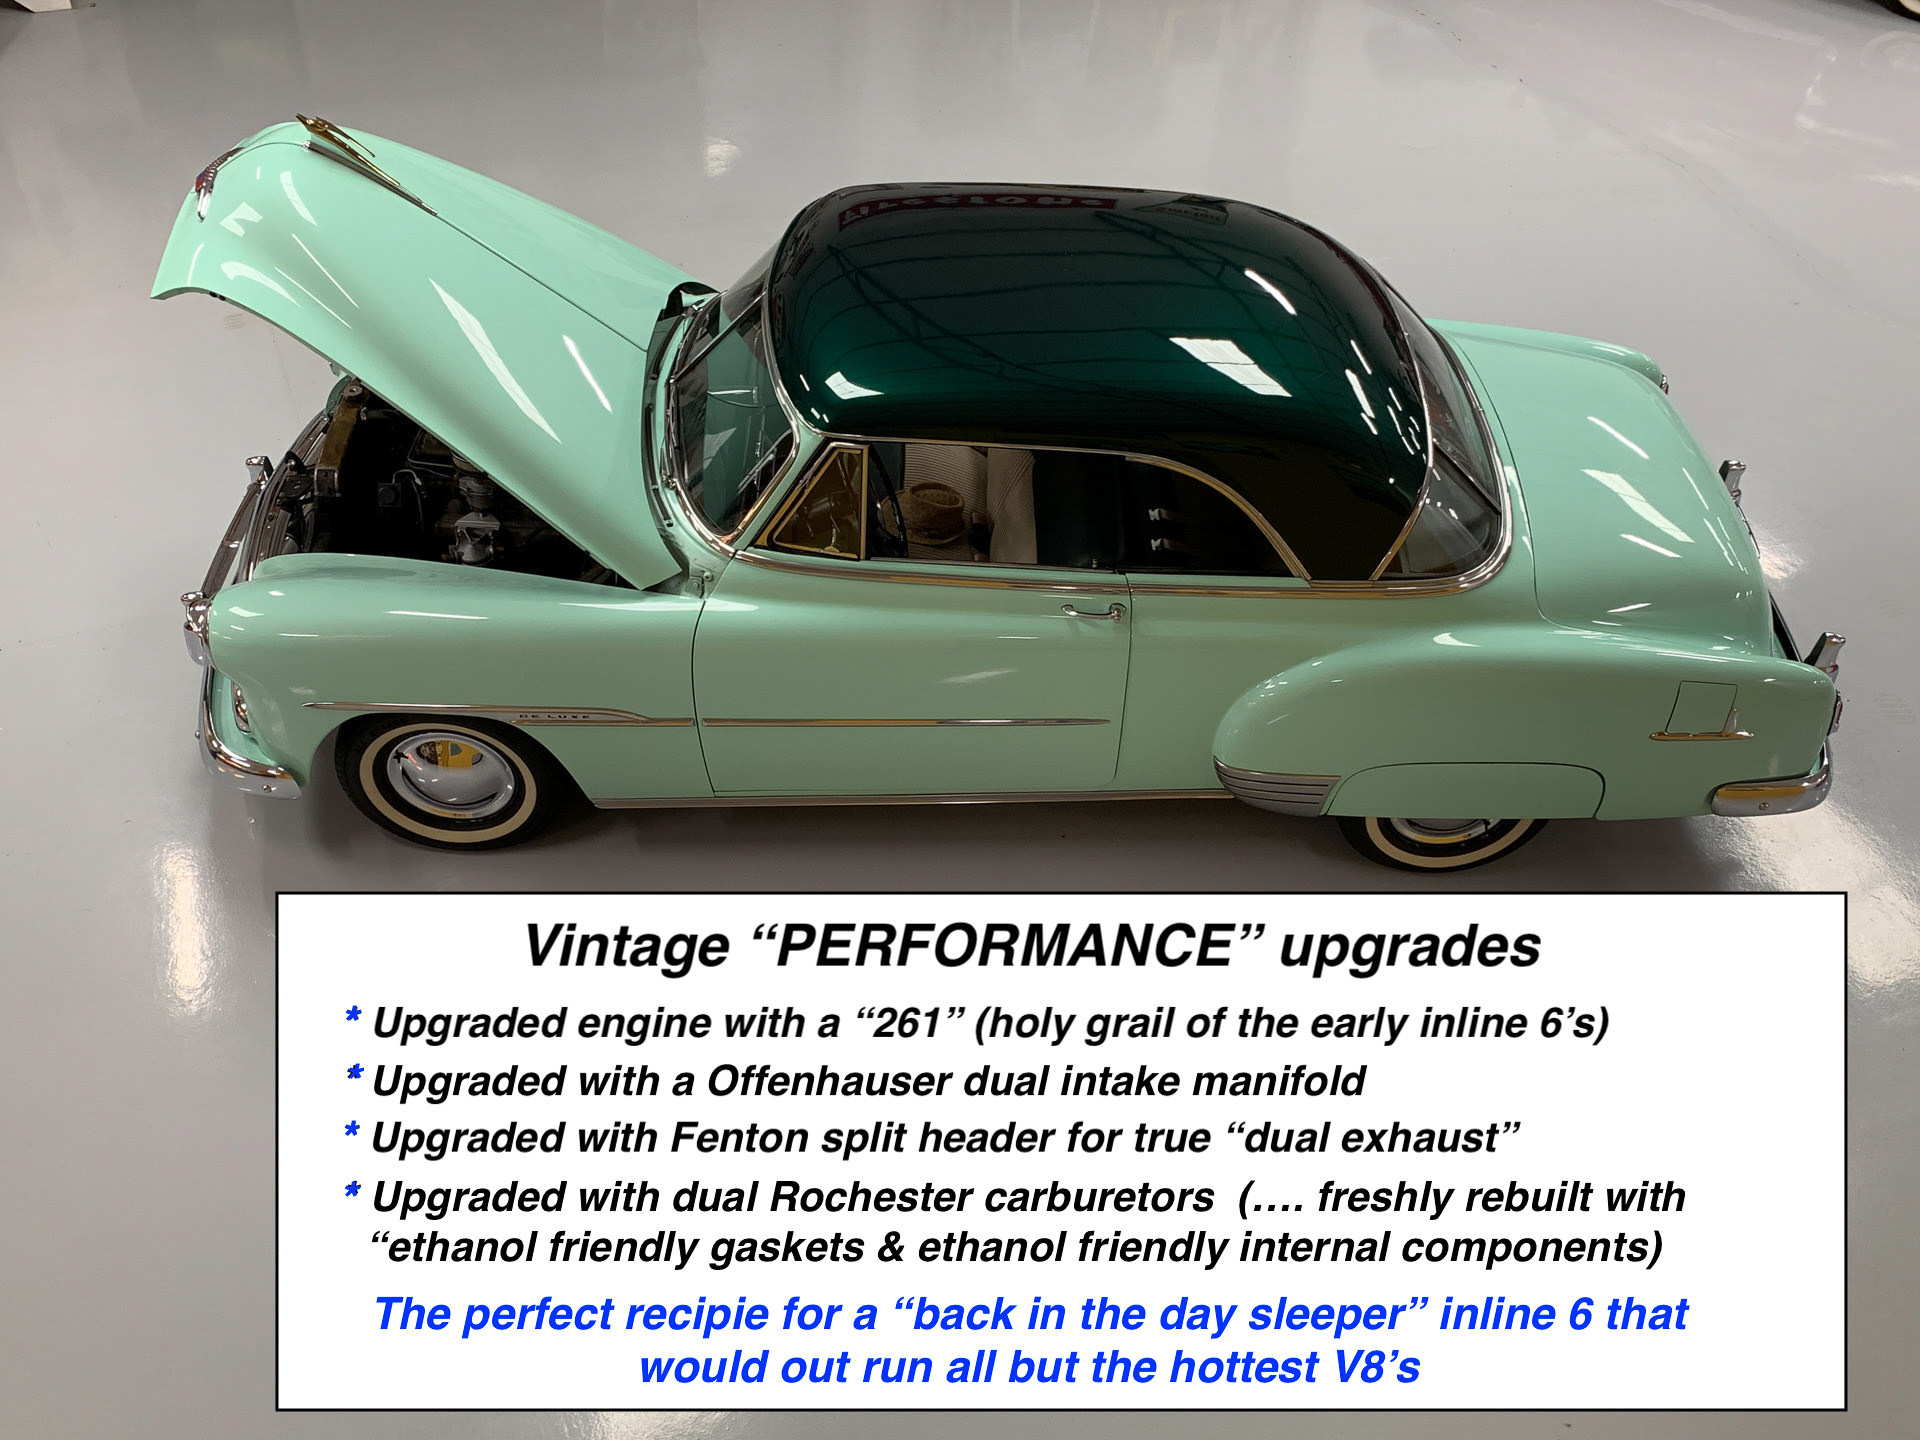 1951 Chevy Bel Air 261 inline six with turbo 350 - For Sale